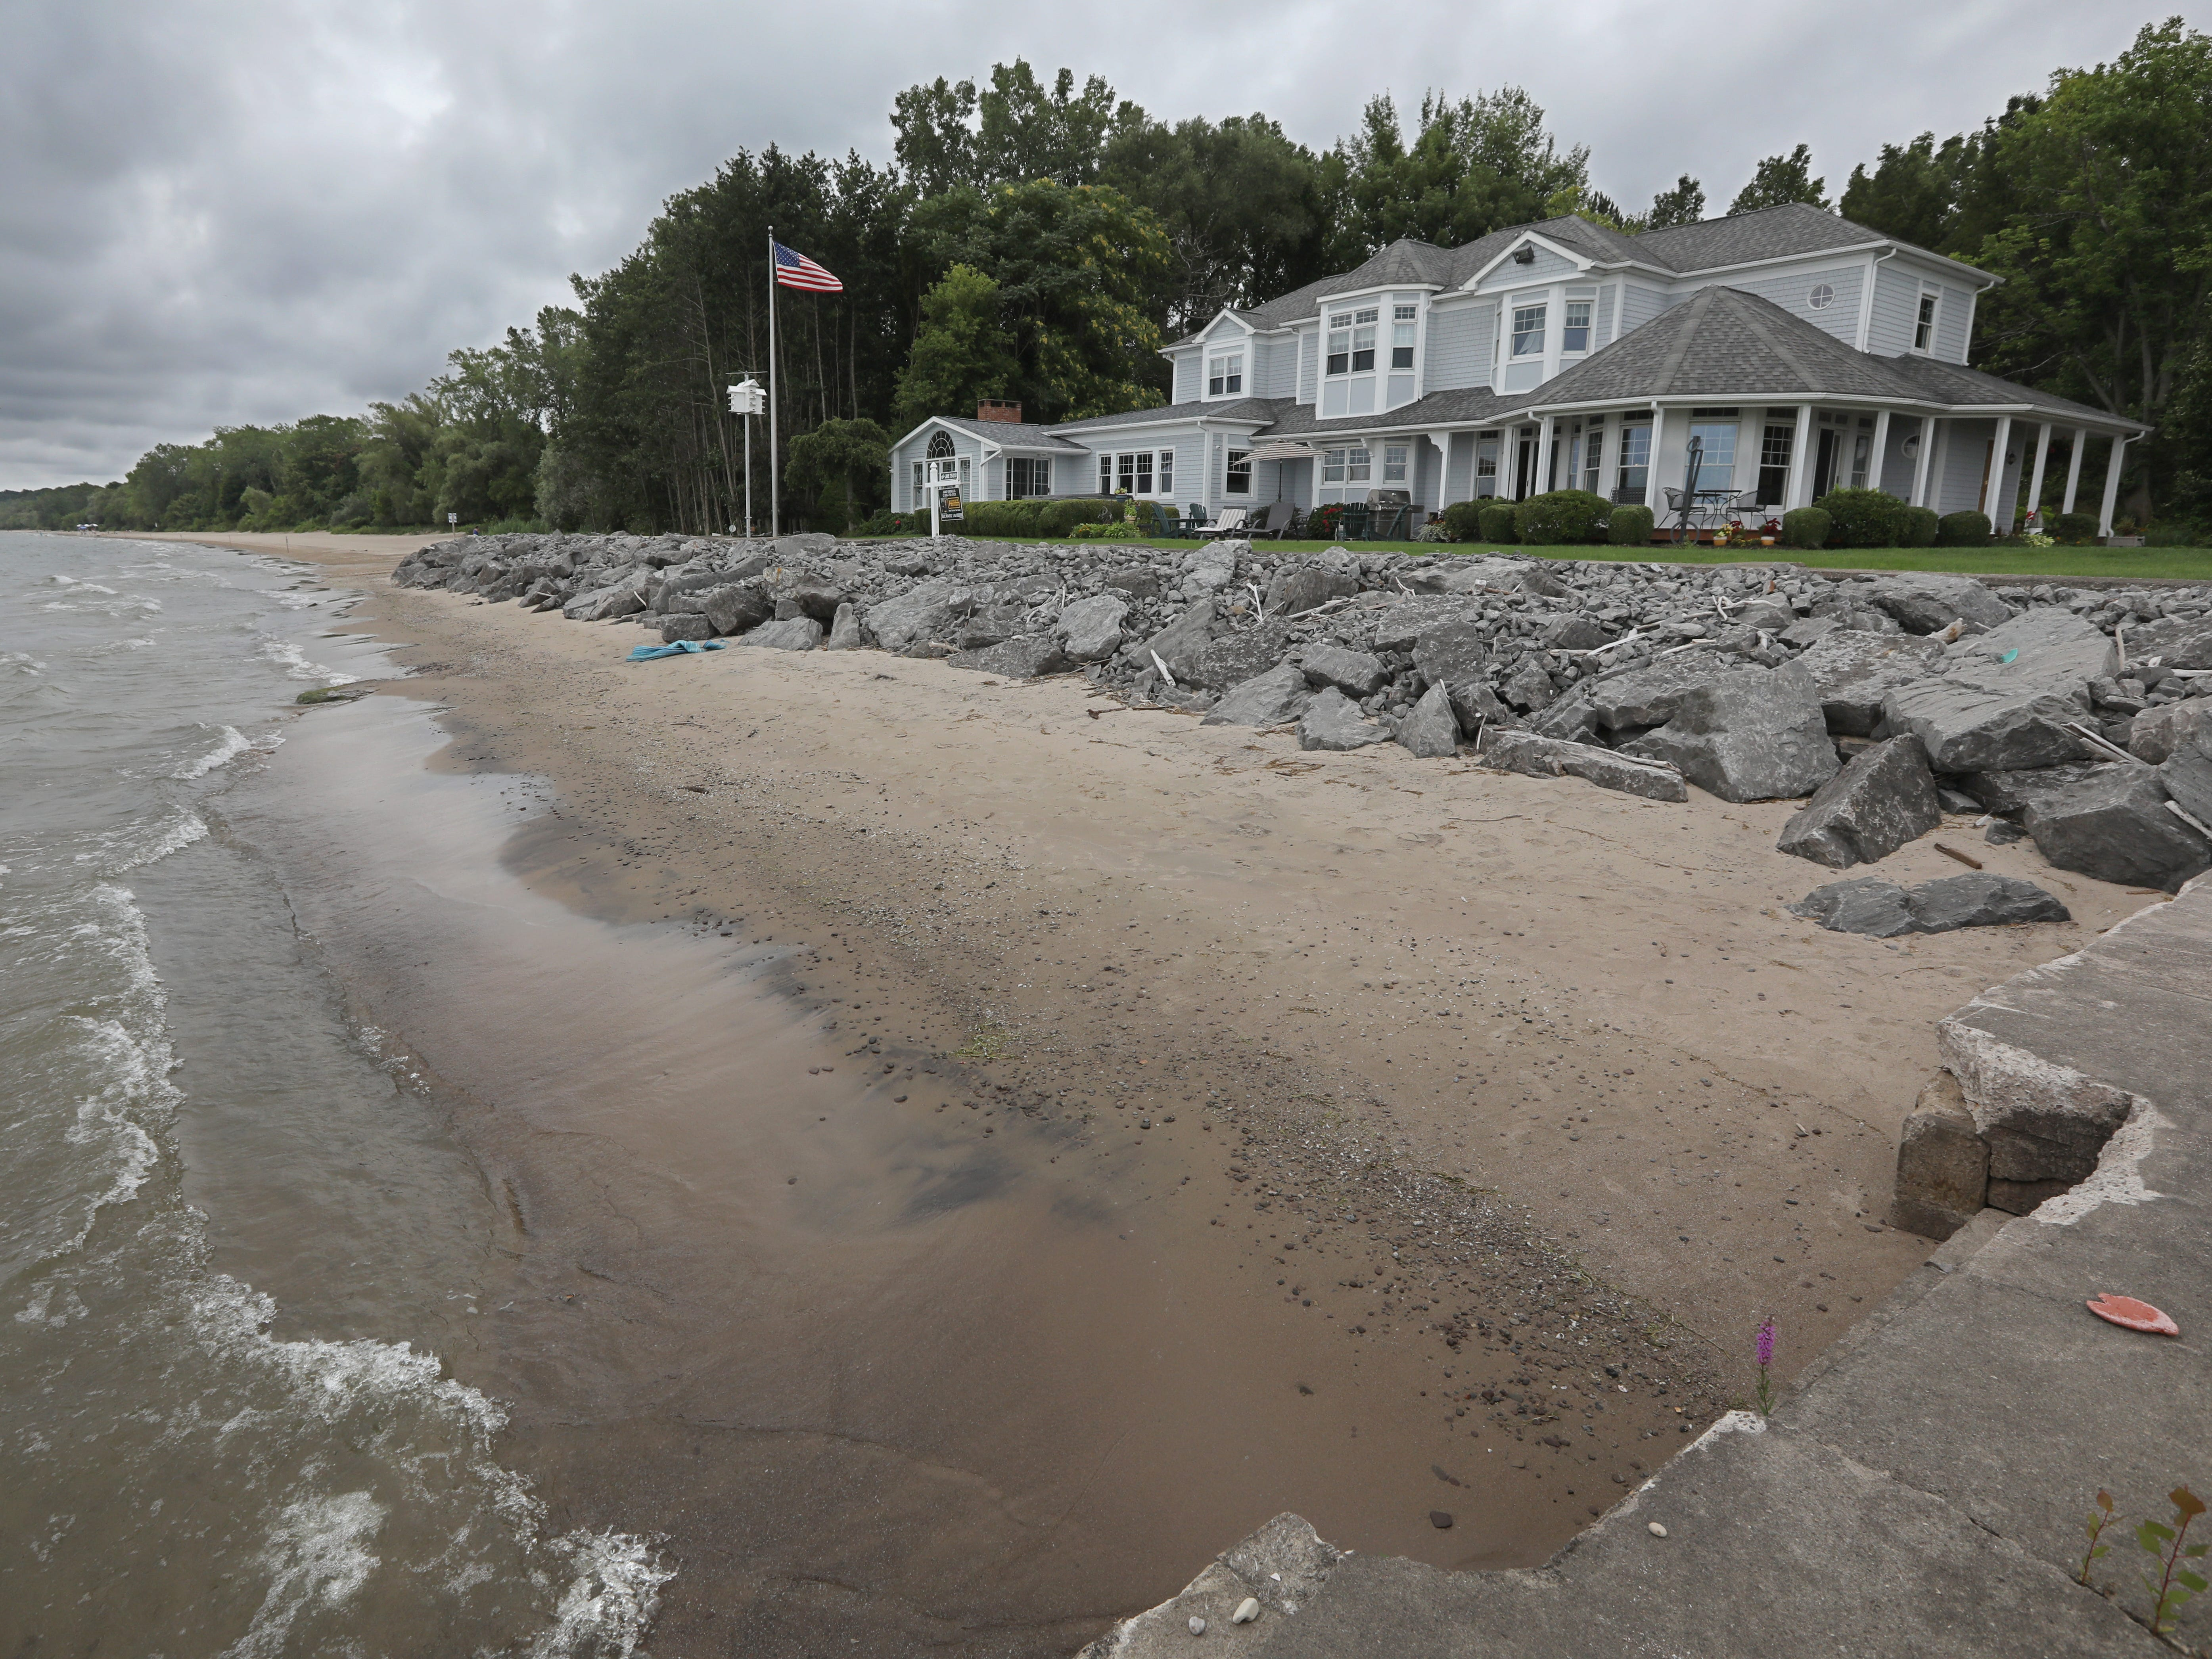 """With its own sandy beach along Lake Ontario, the home at 1060 Rock Beach Road, known as the """"Gold Coast"""" in Irondequoit, is now on the market for $795,000."""